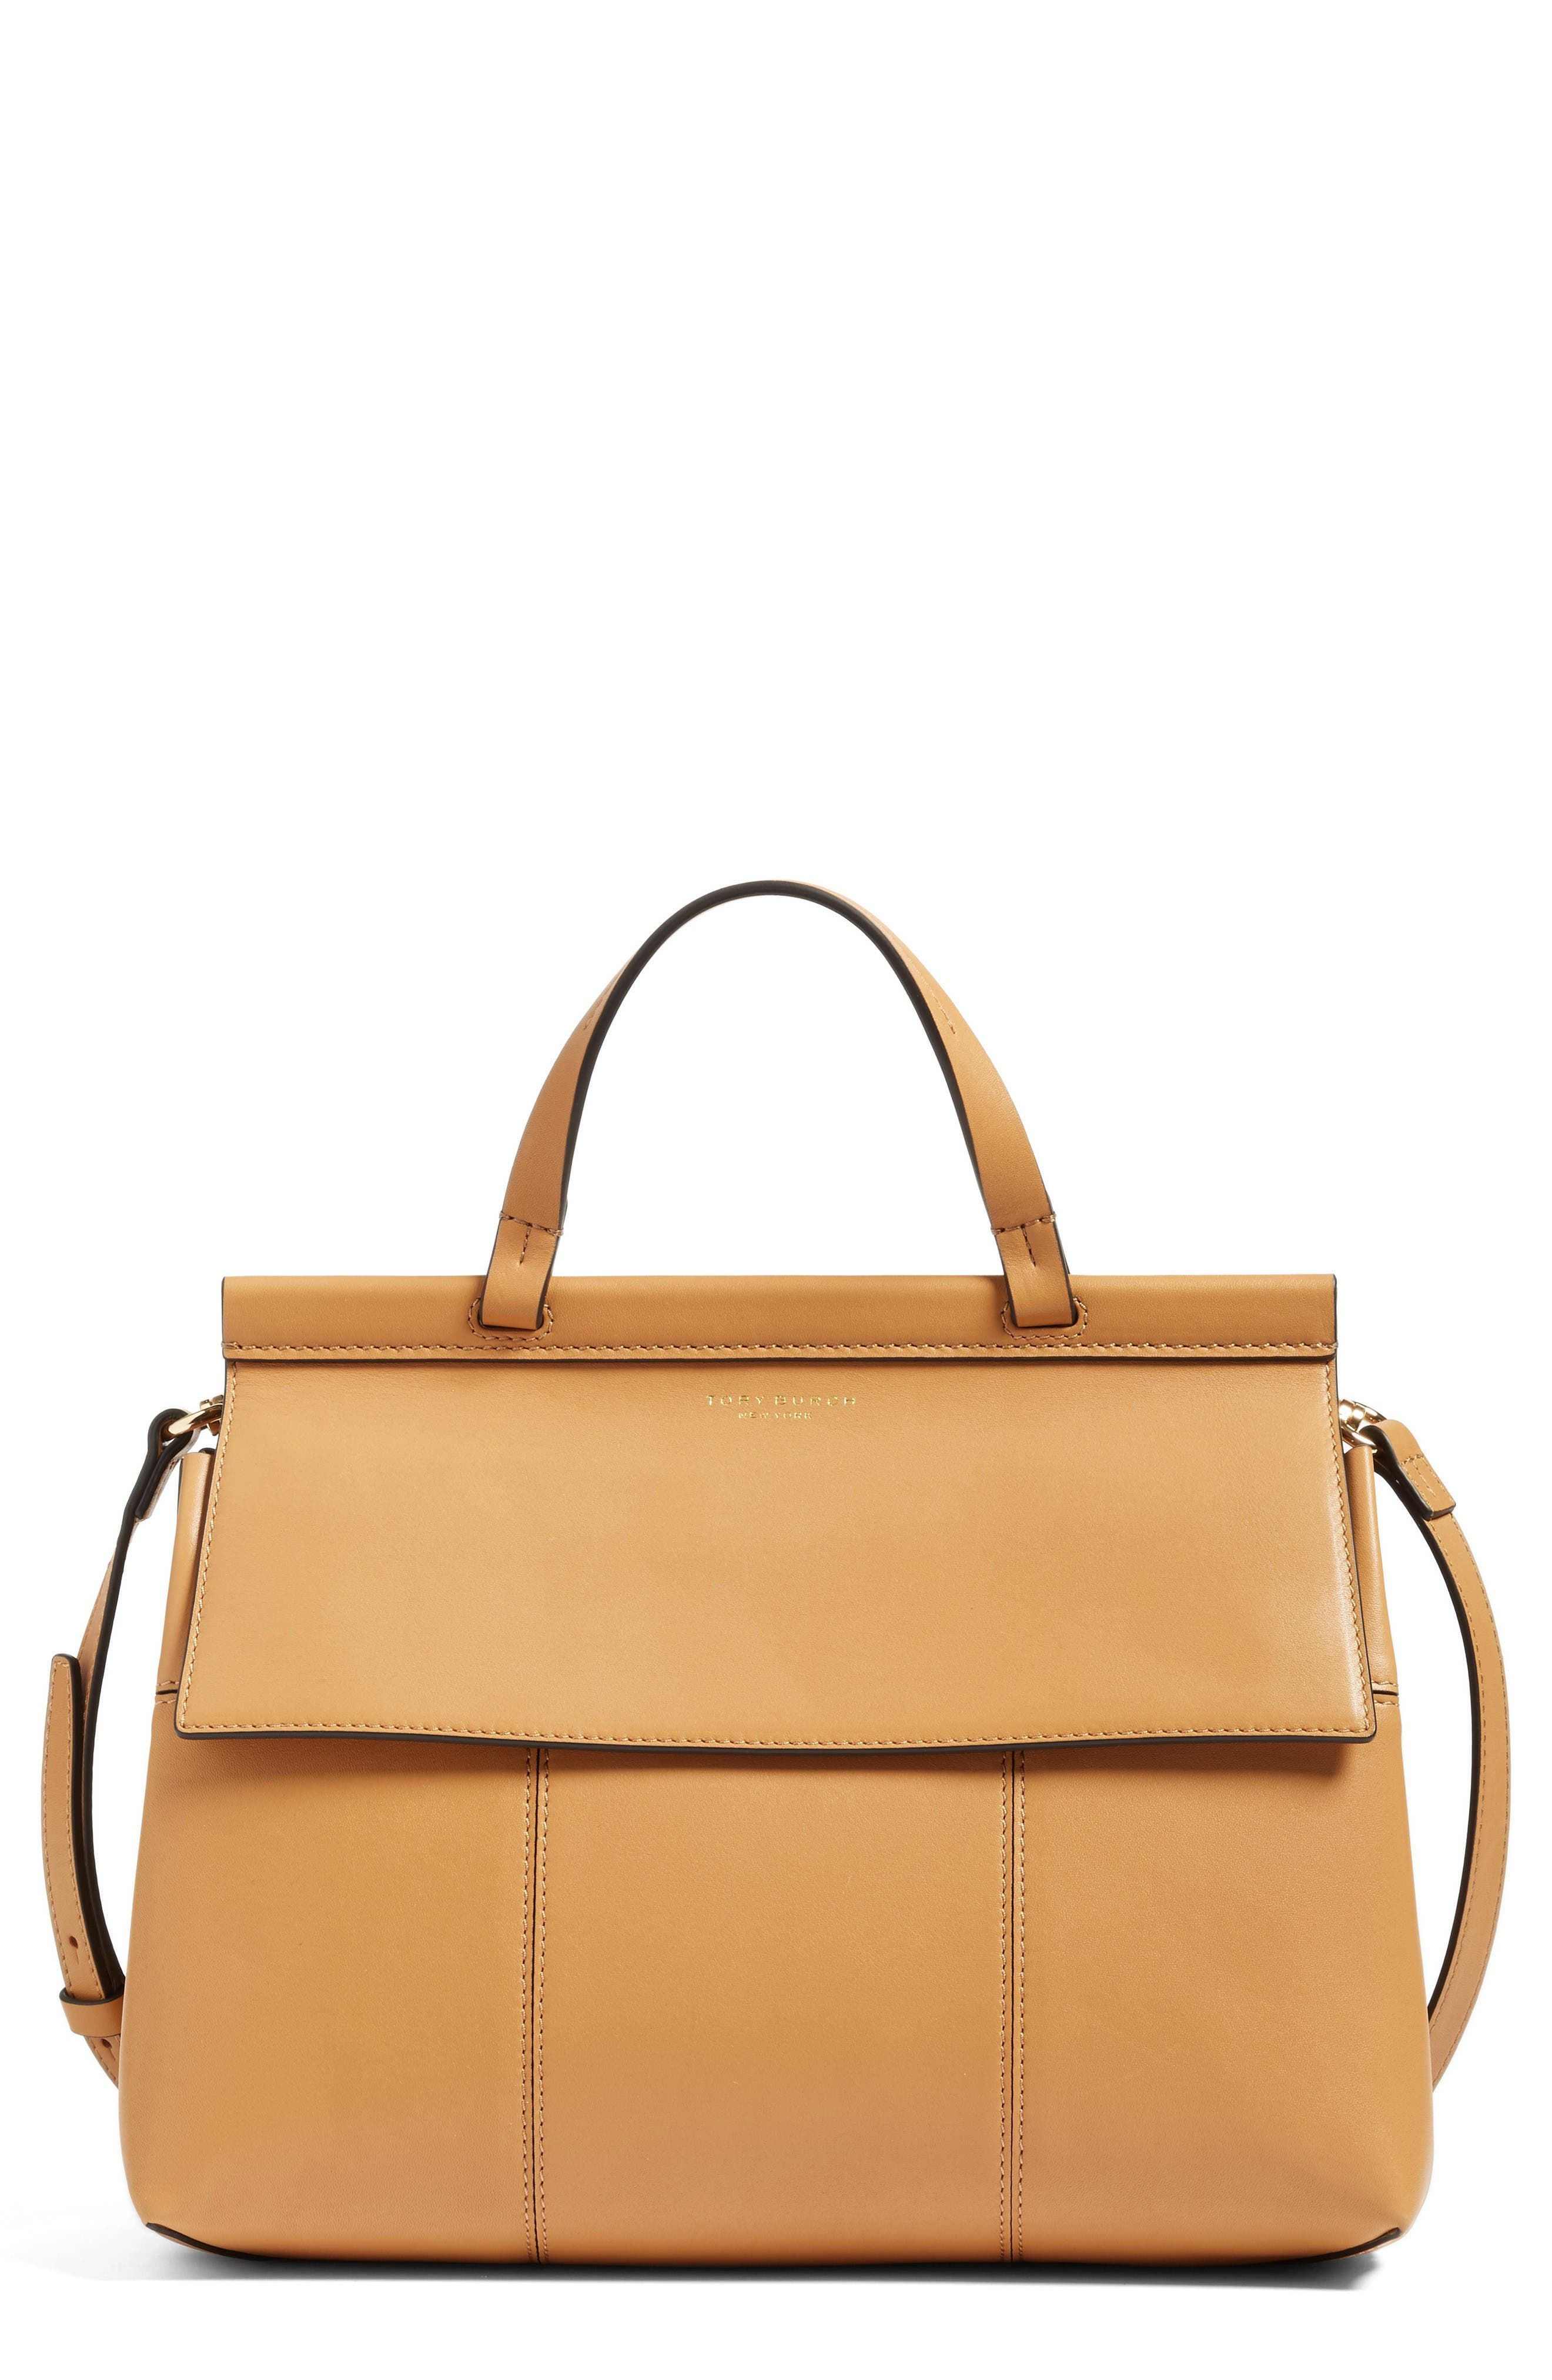 Main Image - Tory Burch Block T Leather Top Handle Satchel